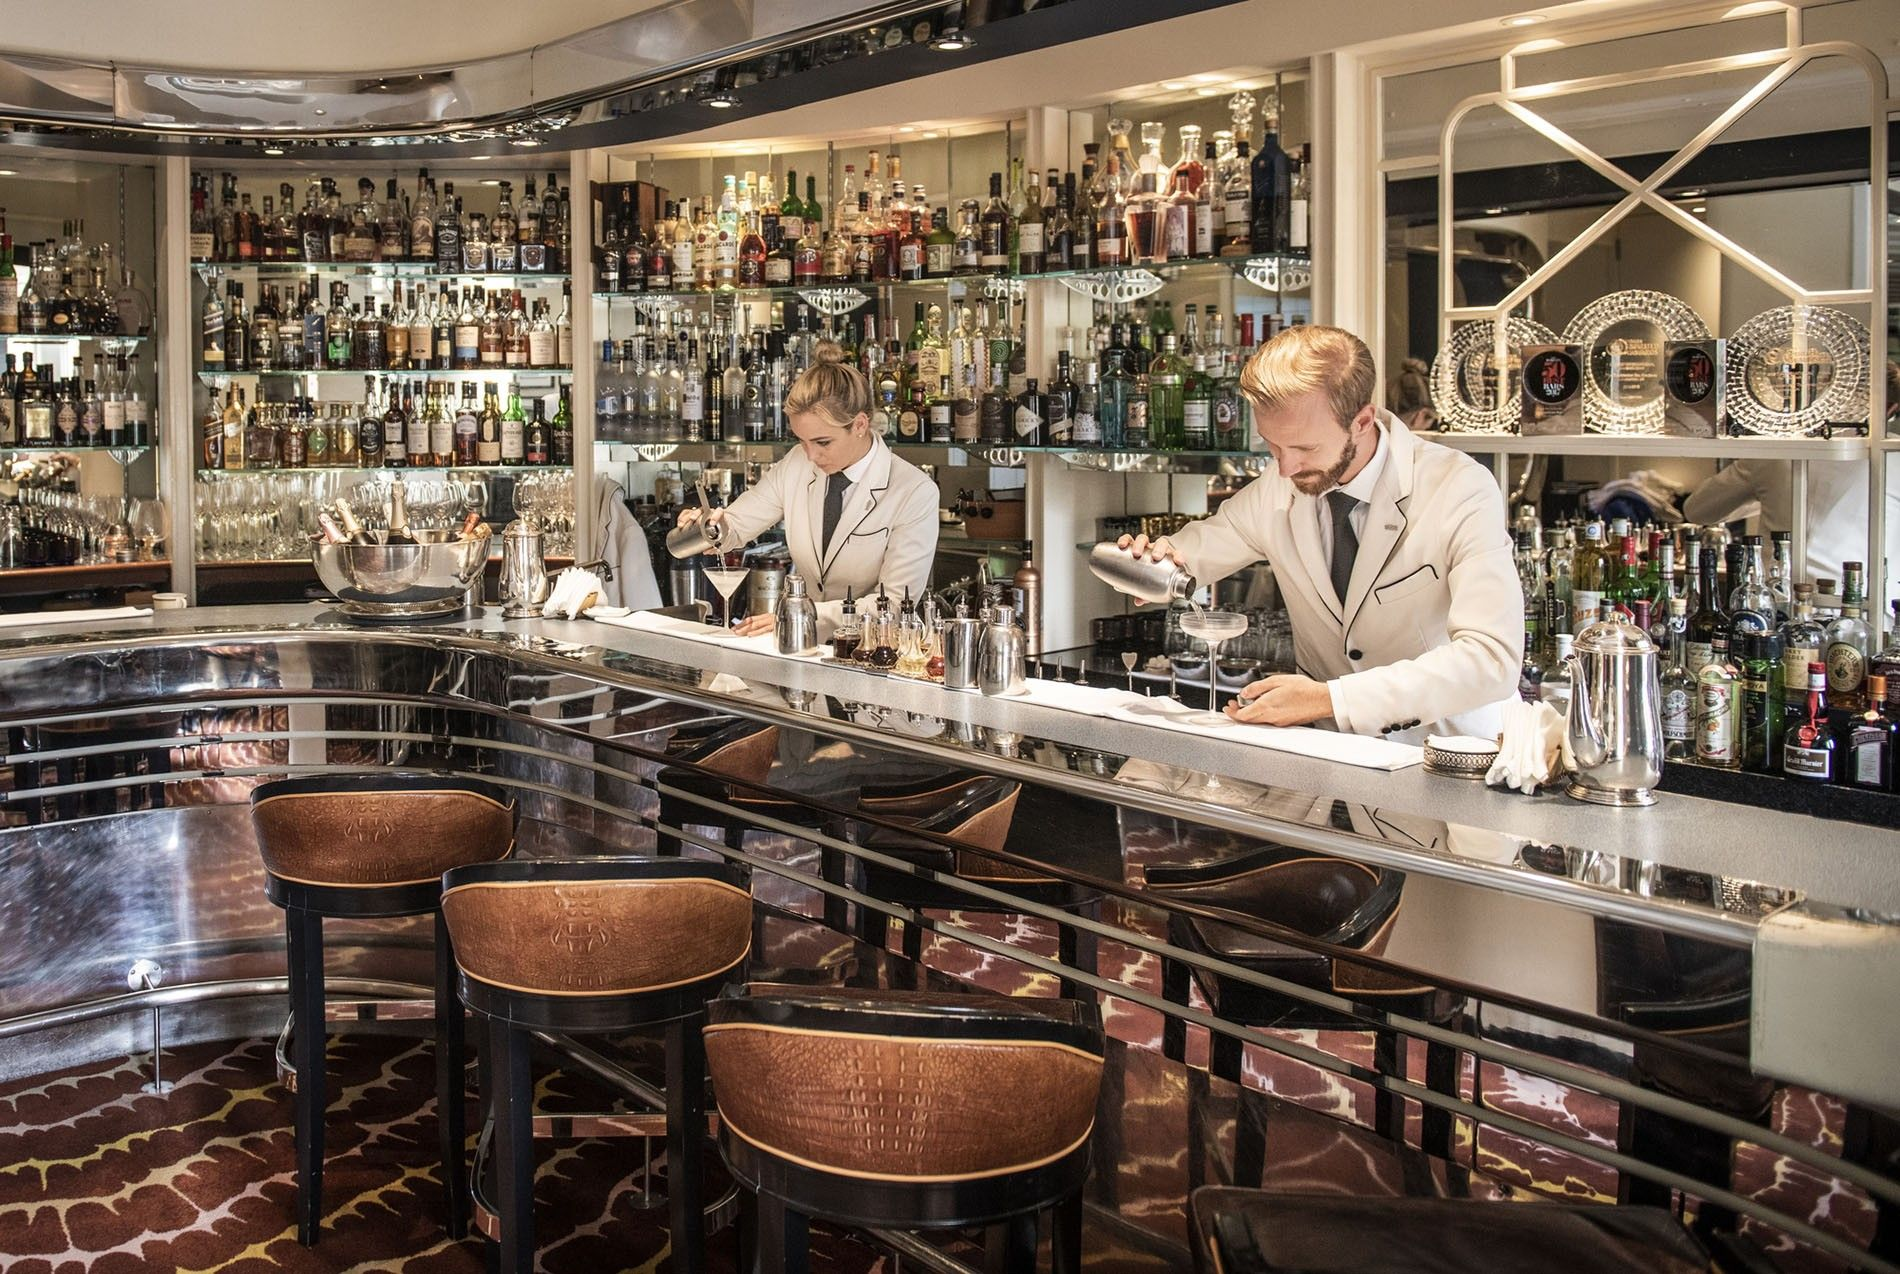 American bar, The Savoy